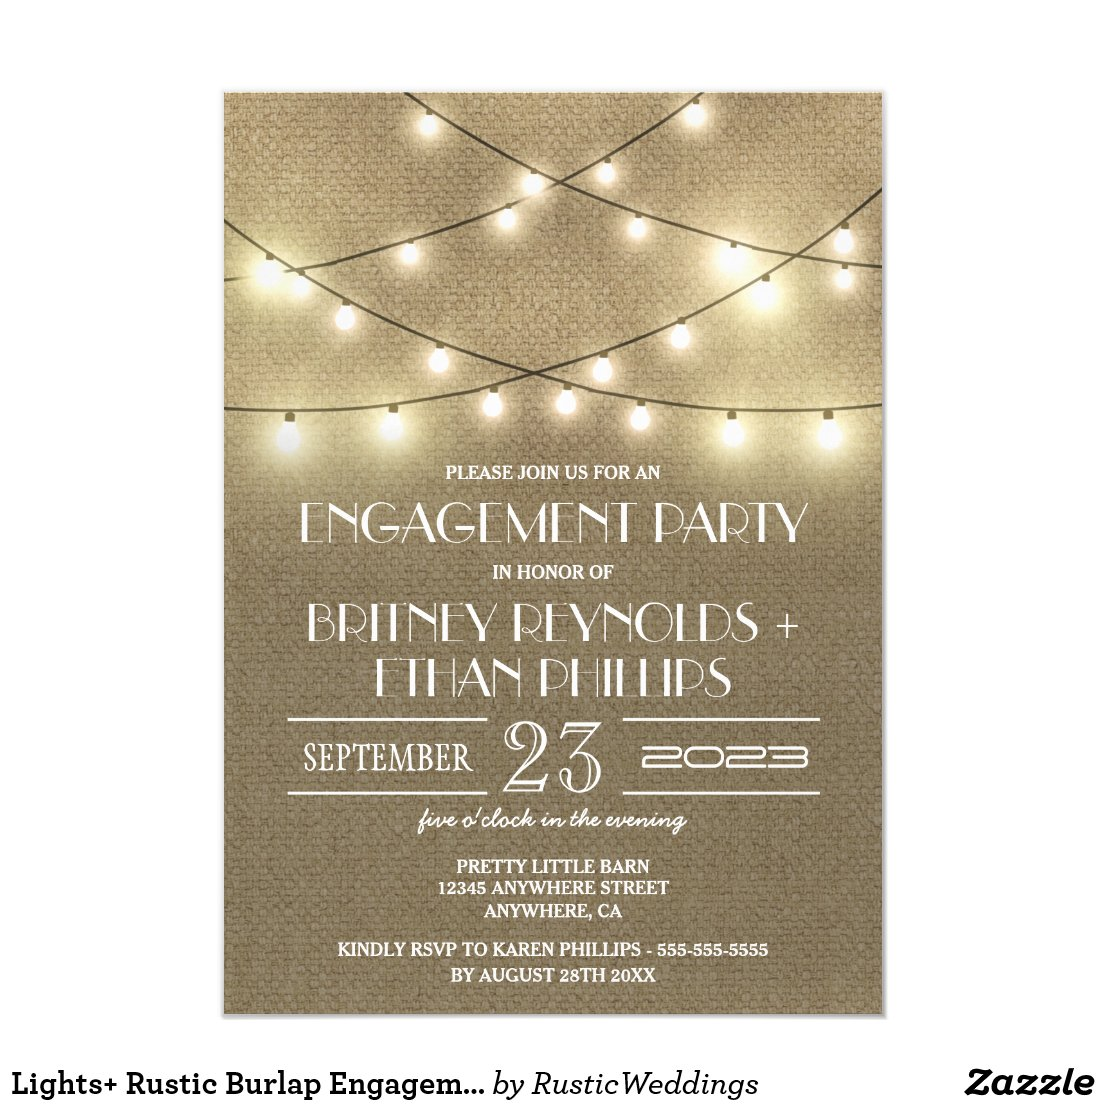 Lights+ Rustic Burlap Engagement Party Invitations